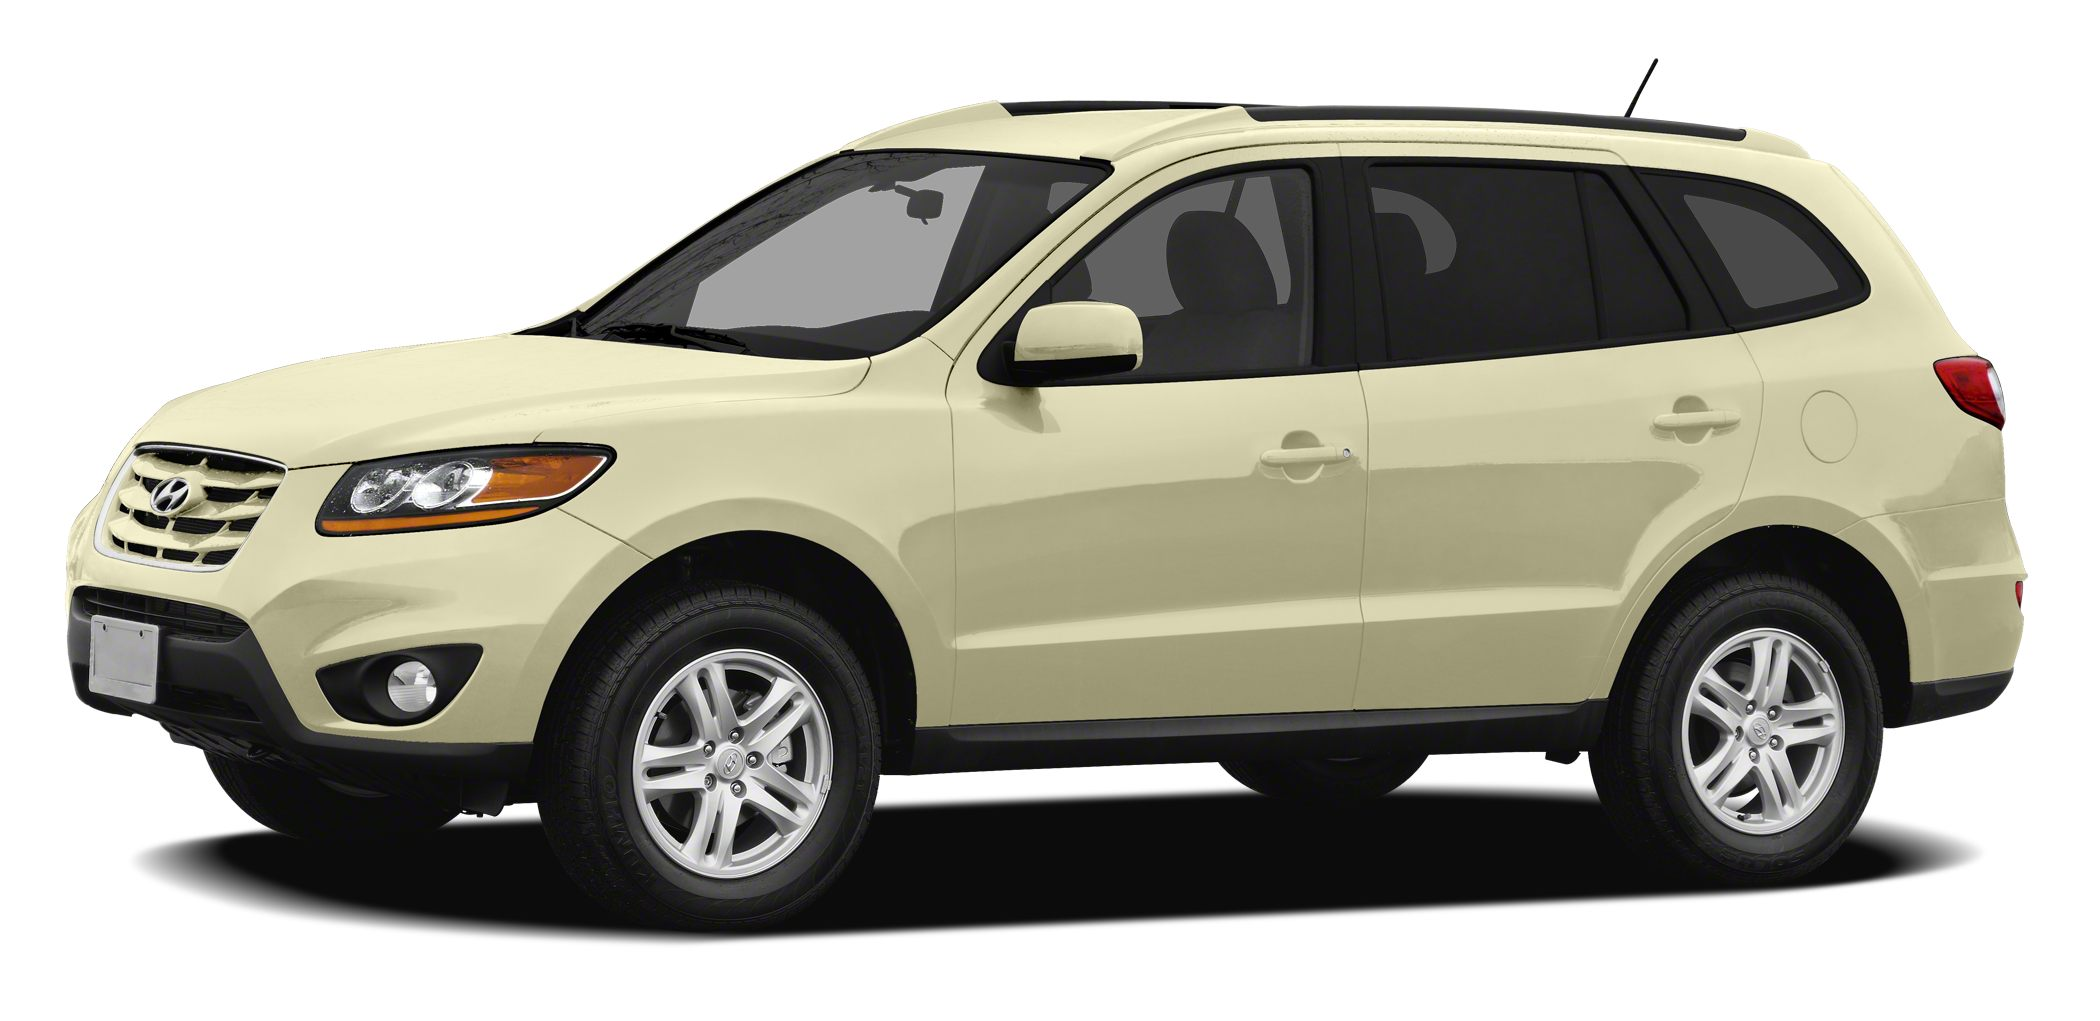 2012 Hyundai Santa Fe GLS Hyundai Certified just 9k miles on this AWD one owner Santa Fe that comes